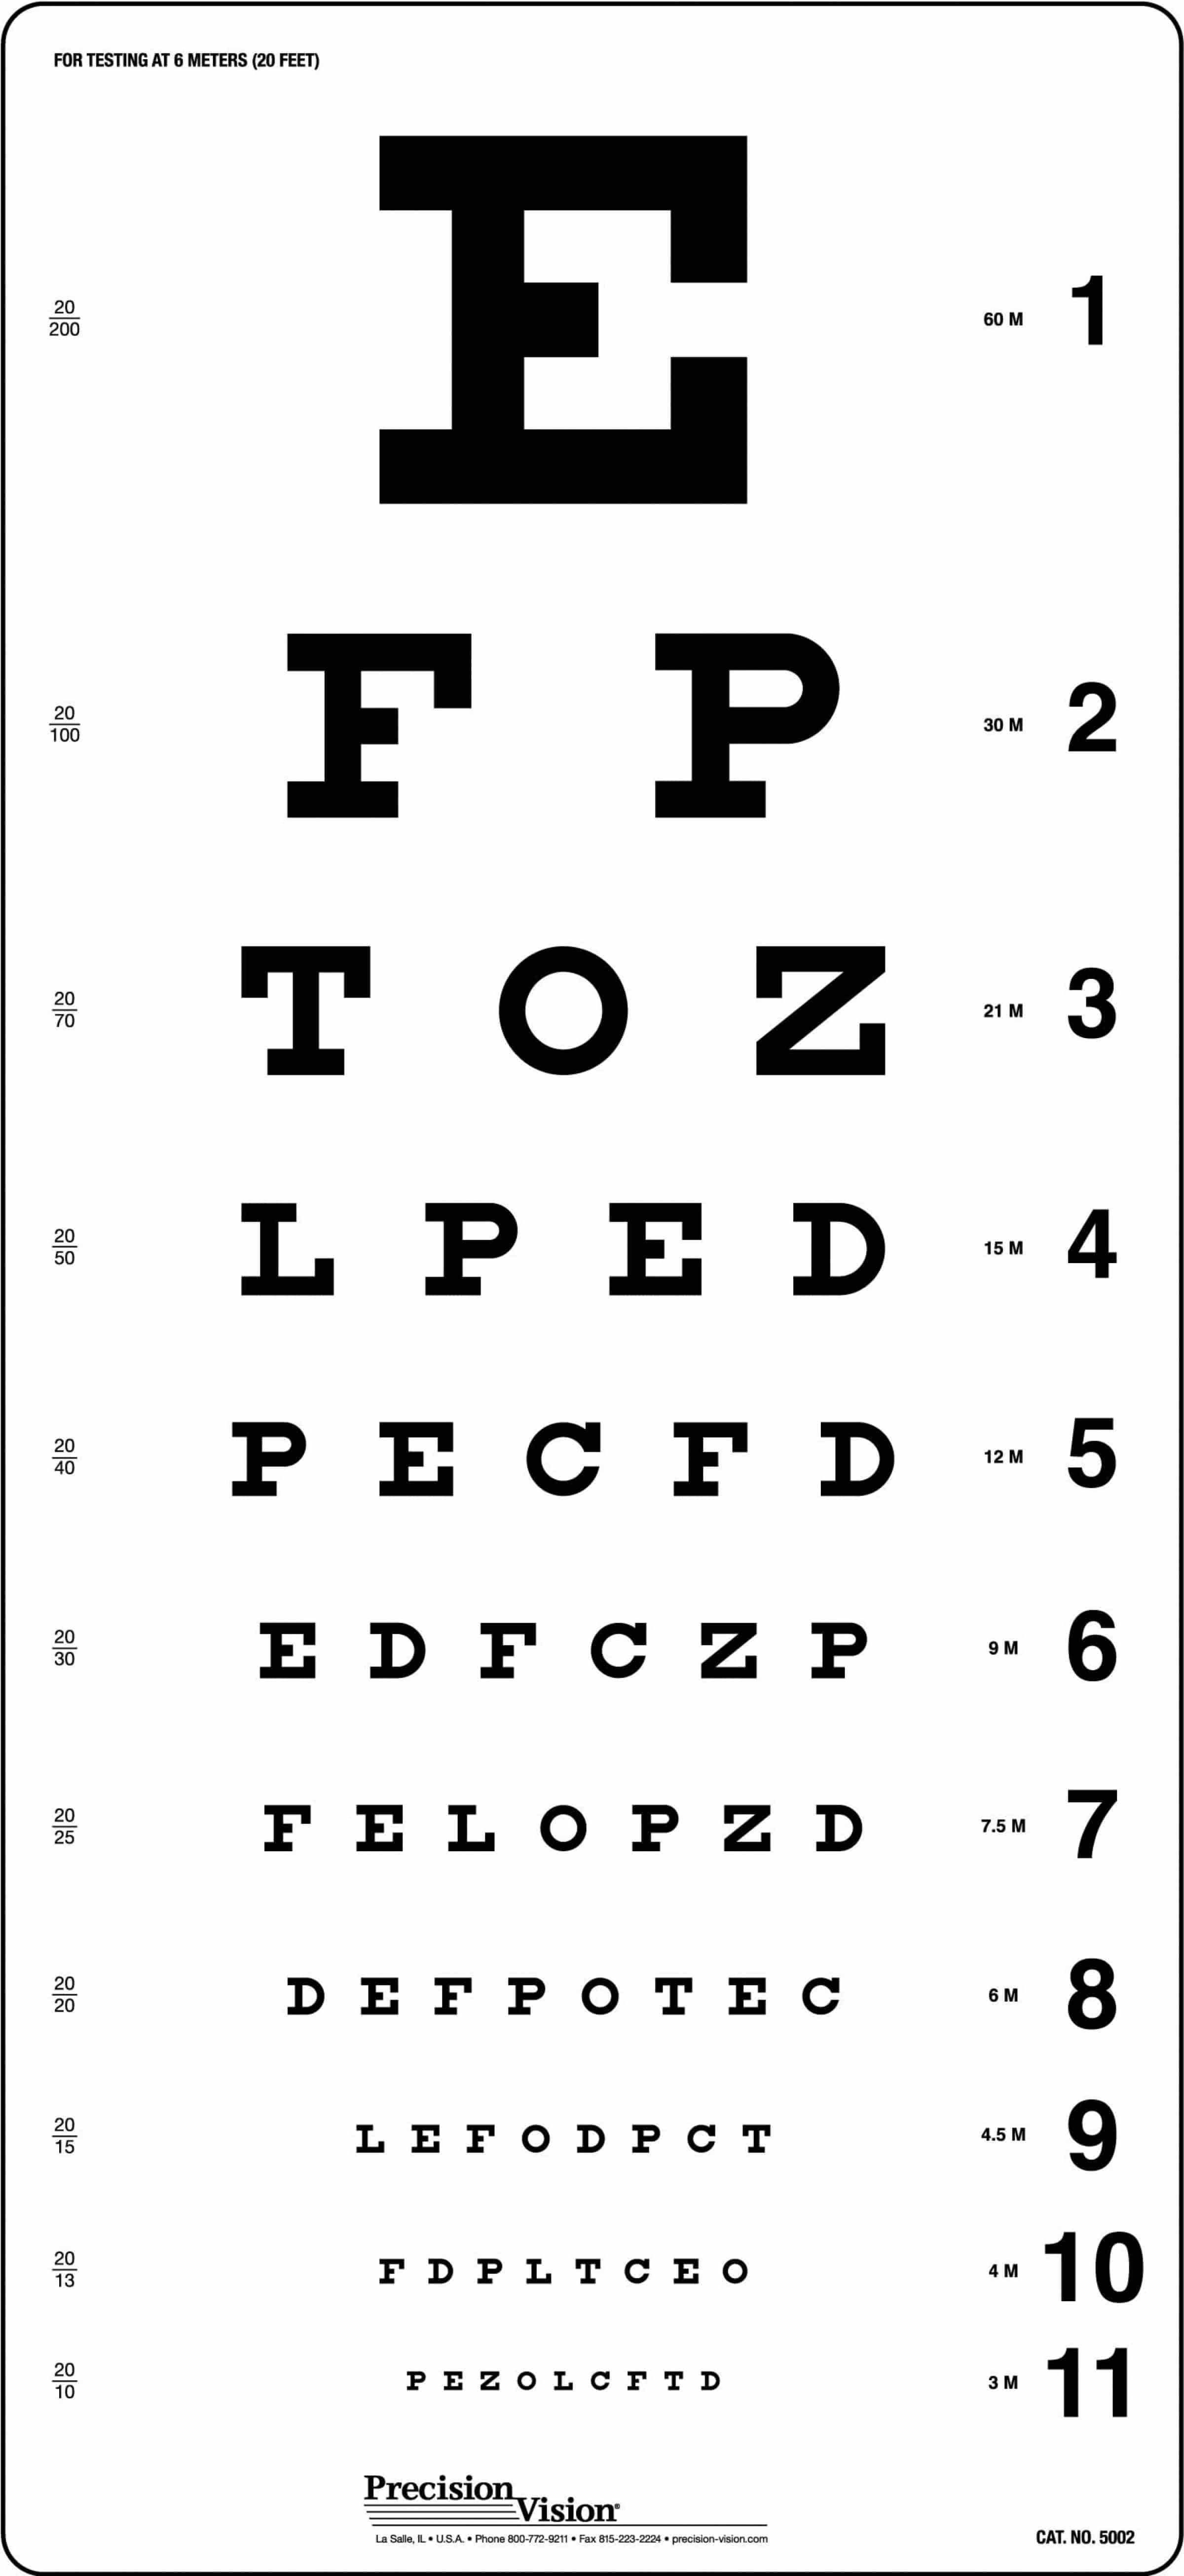 Traditional Snellen Eye Chart Precision Vision In 2020 Eye Chart Eye Test Chart Vision Eye